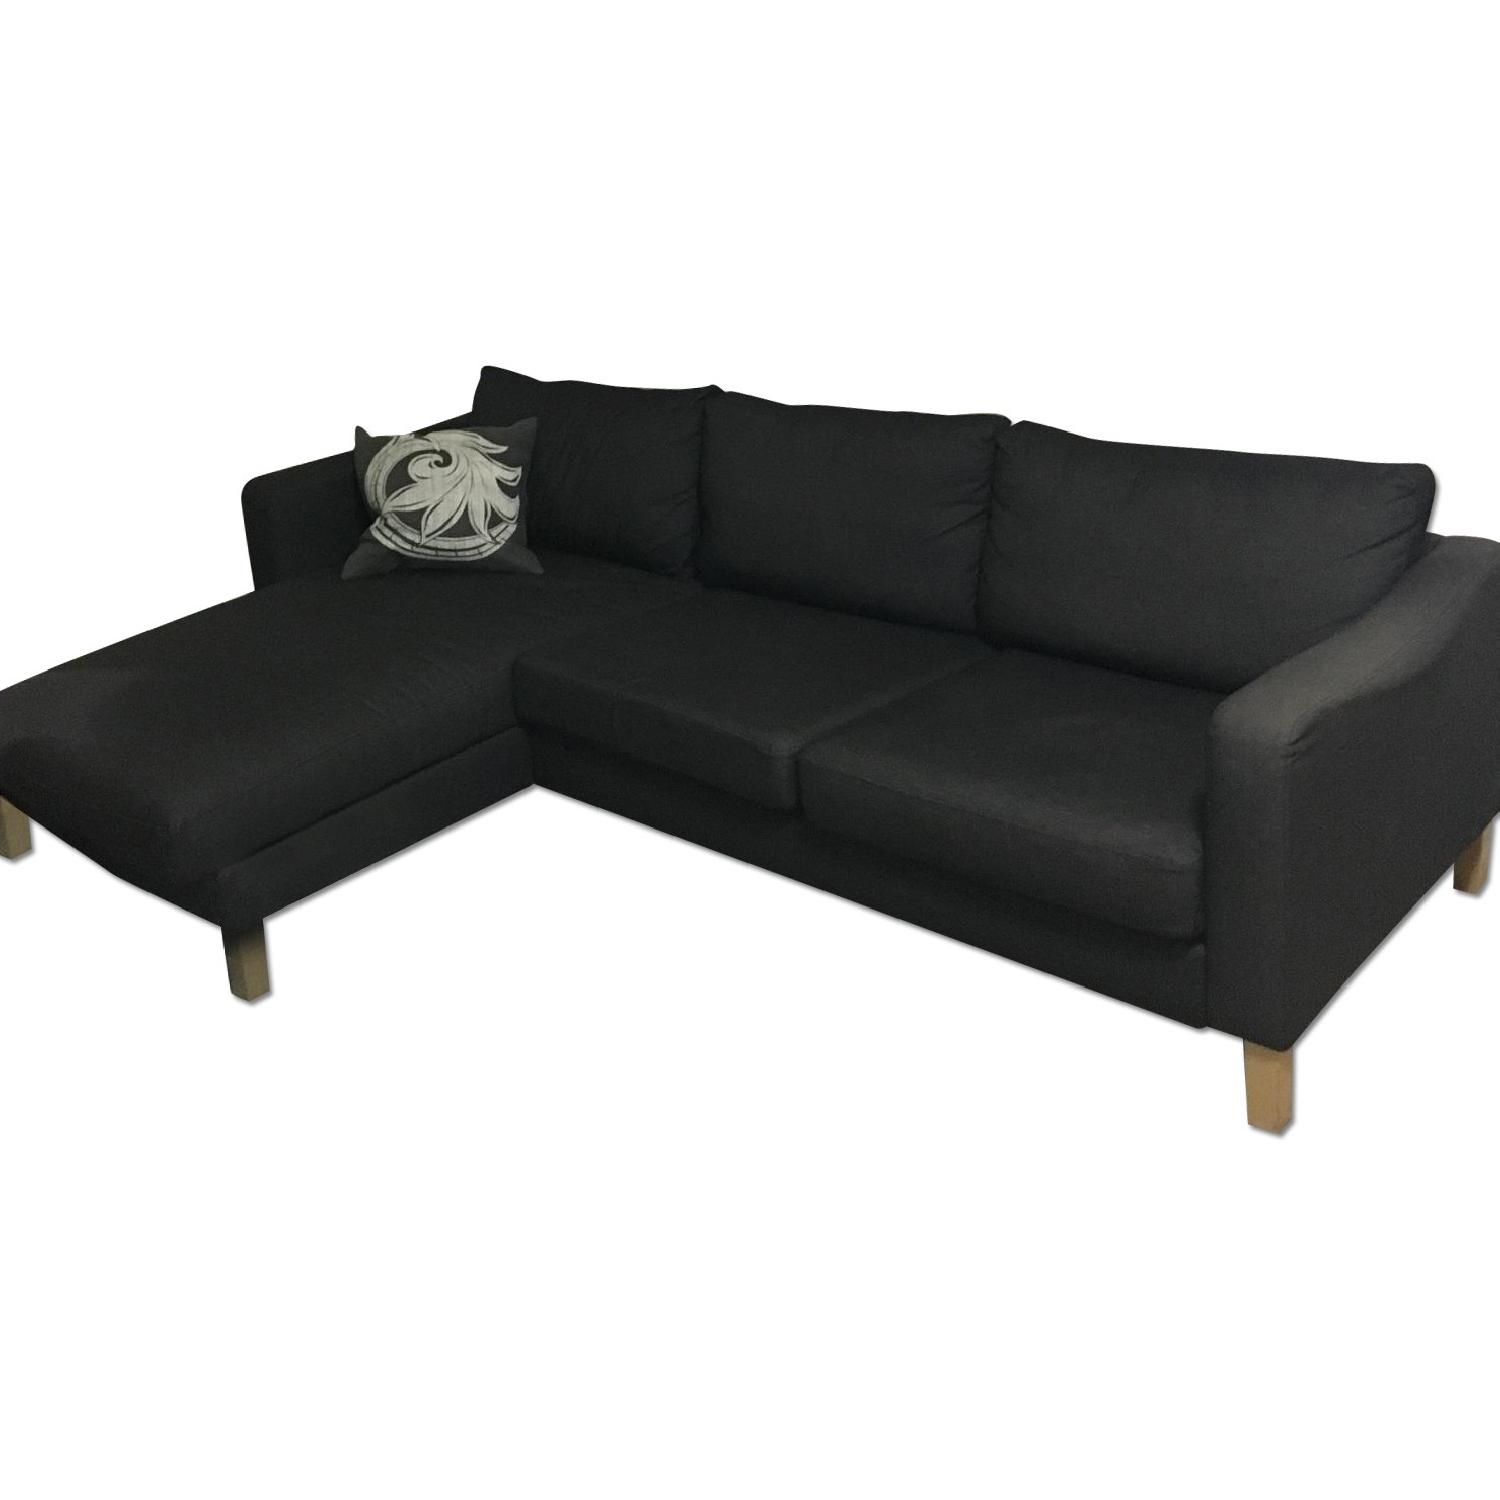 Ikea Charcoal Grey Sectional Couch - image-0